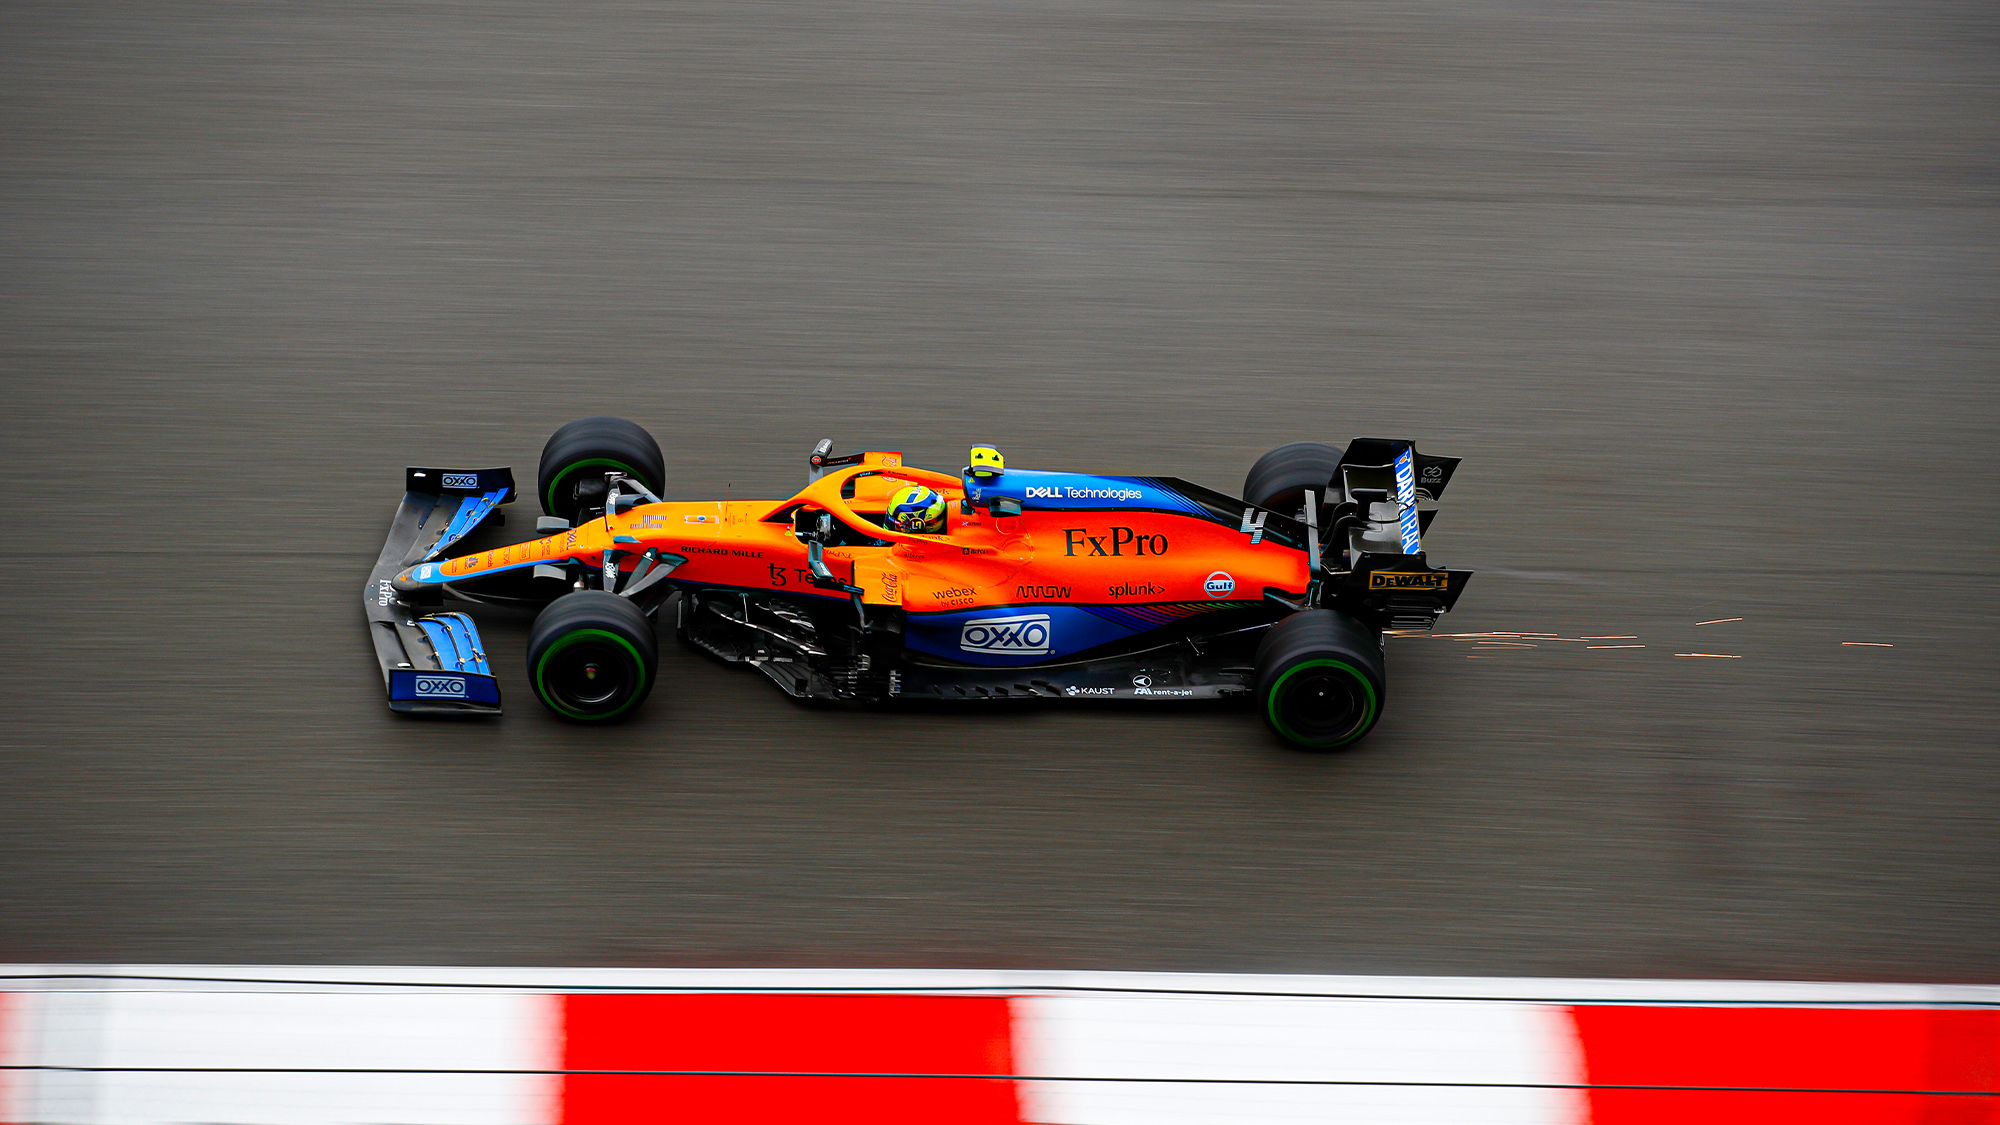 Lando Norris in qualifying for the 2021 Russian GP